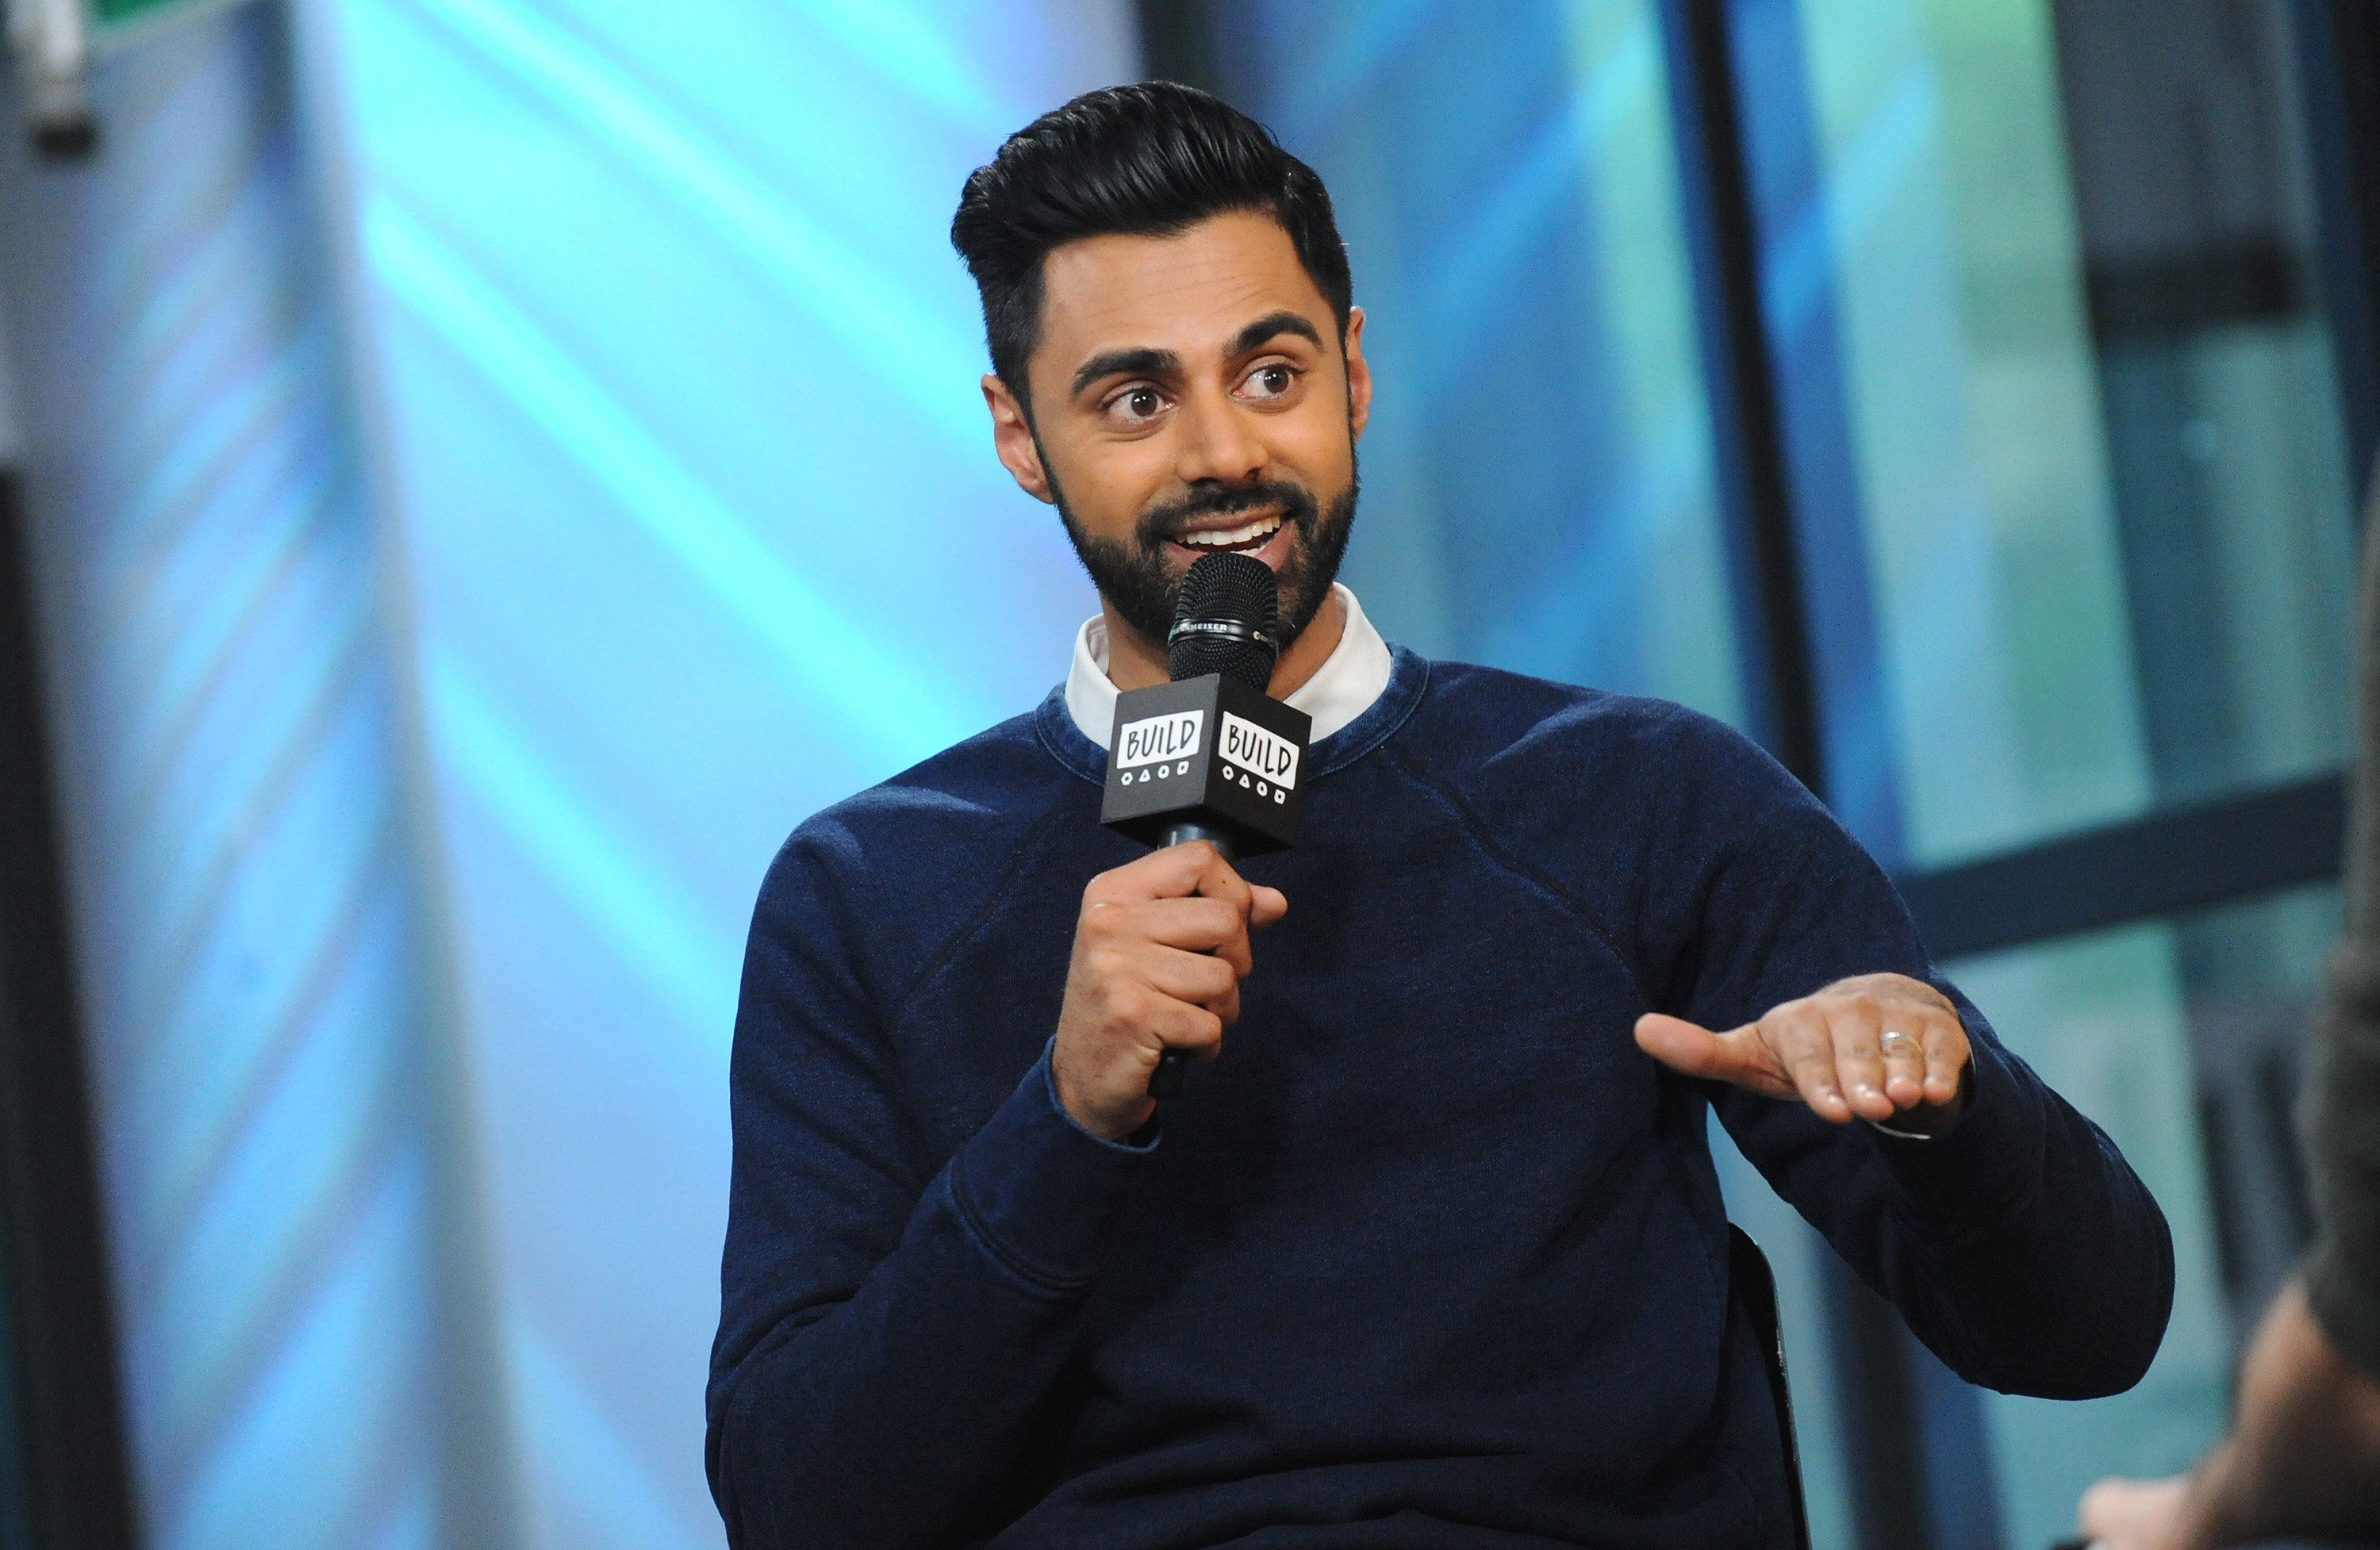 NEW YORK, NY - MAY 25:  Comedian Hasan Minhaj attends Build to discuss his new netflix special 'Hasan Minhaj: Homecoming King' at Build Studio on May 25, 2017 in New York City.  (Photo by Desiree Navarro/FilmMagic)